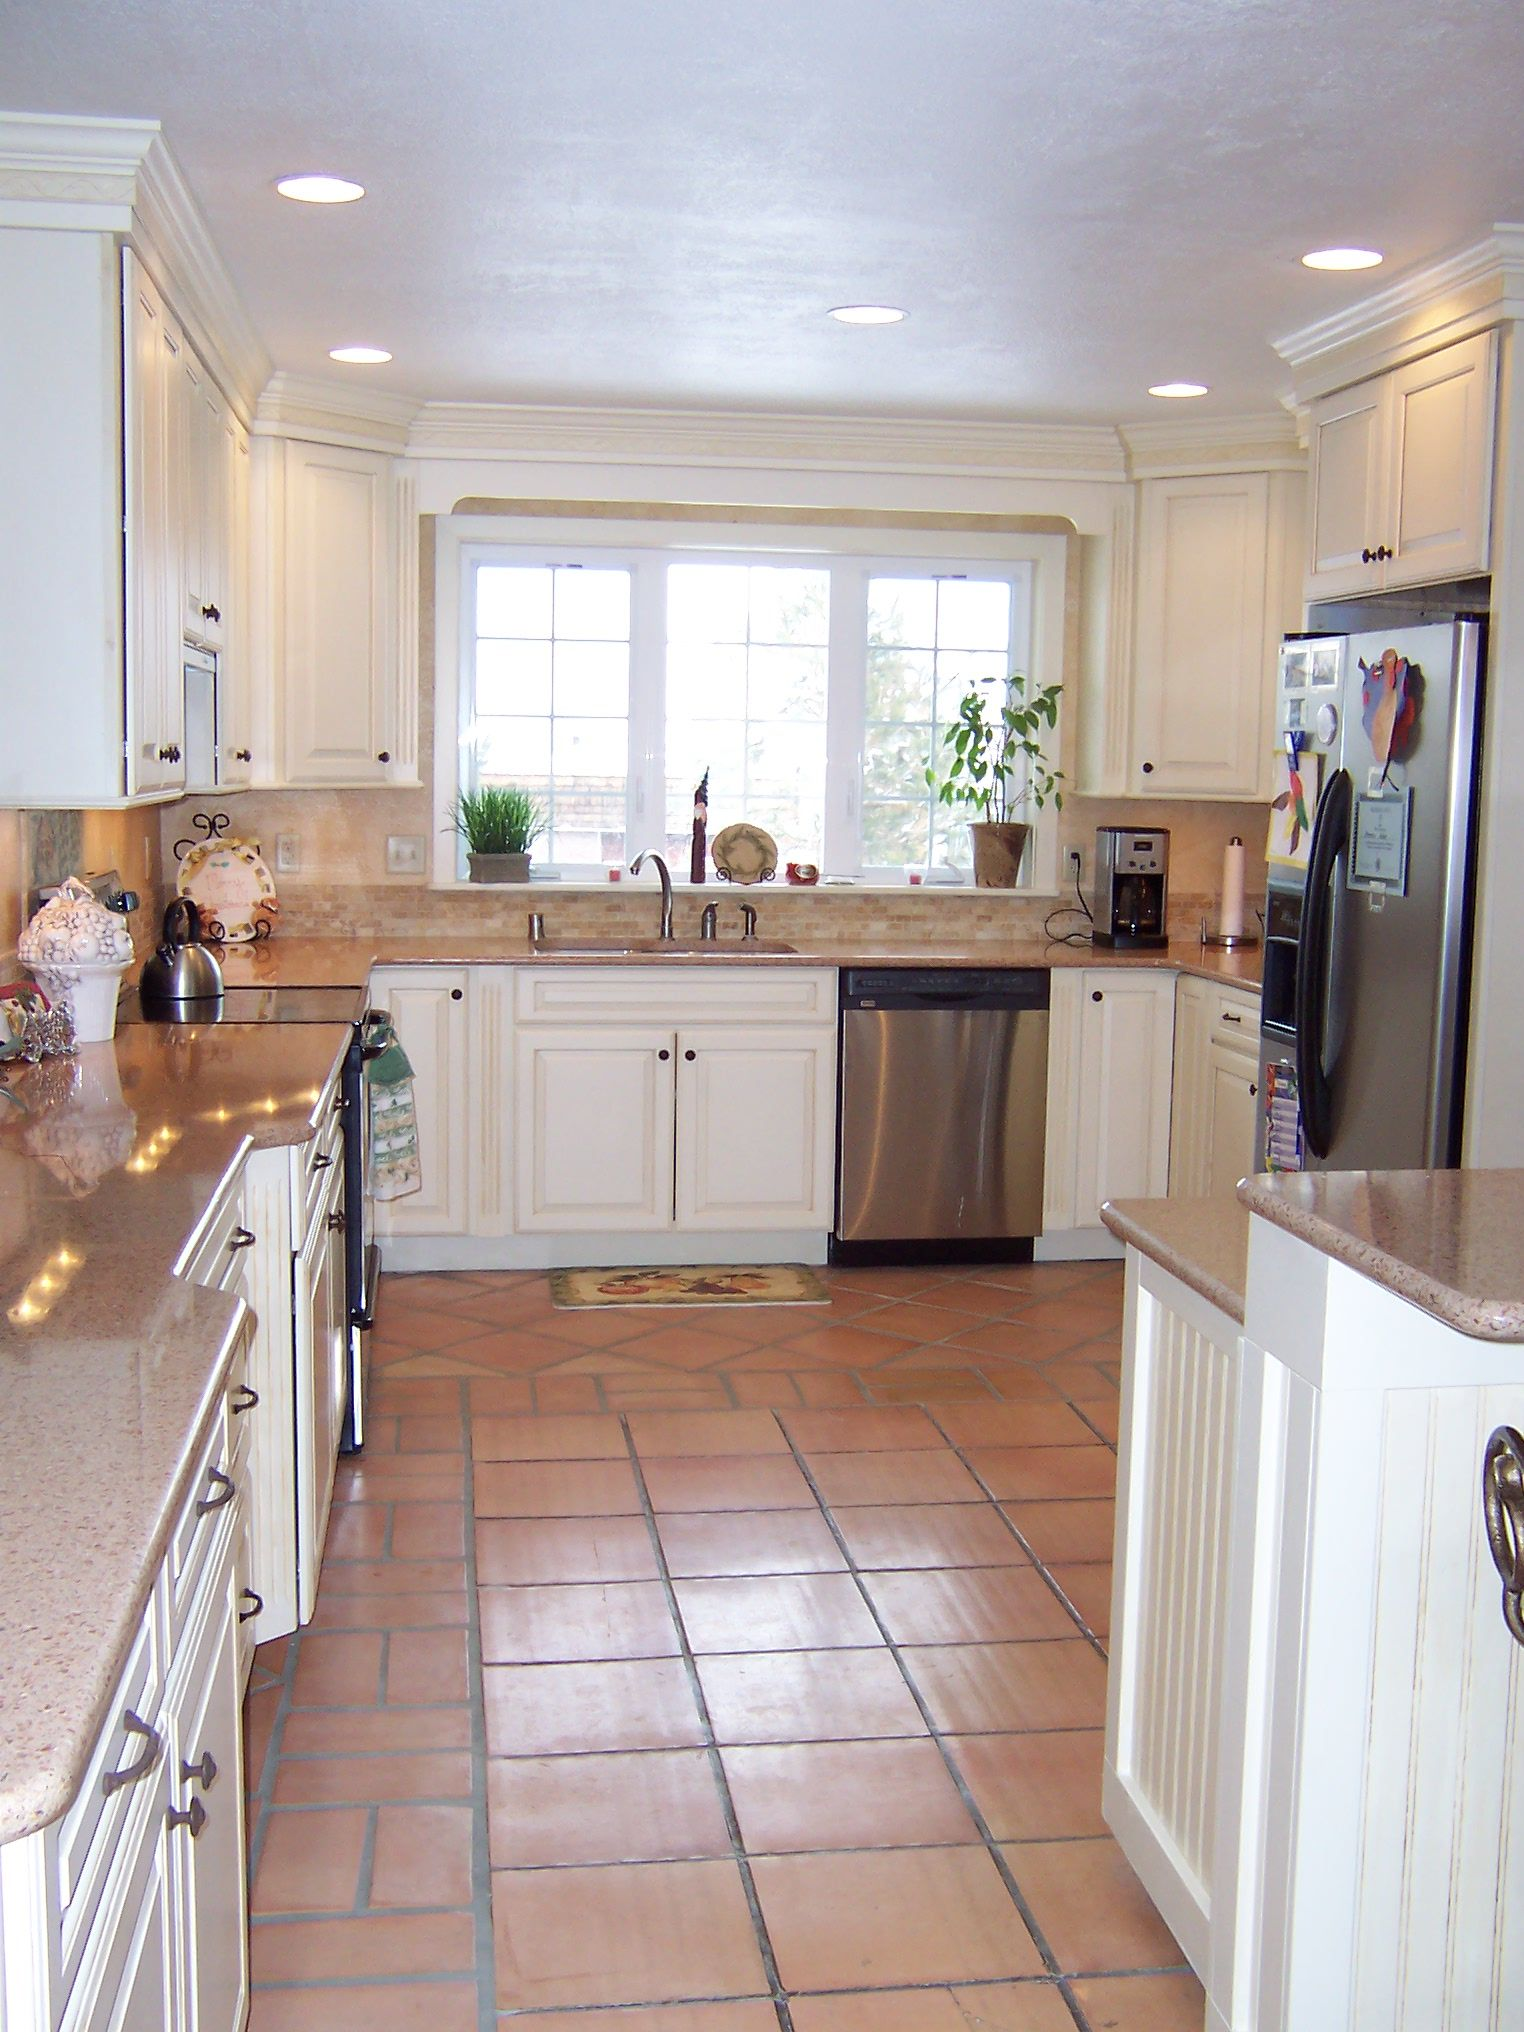 White kitchen saltillo tile google search for the home white kitchen saltillo tile this bench topmay match ours similar floor tiles and i like white kitchen cabinet dailygadgetfo Image collections